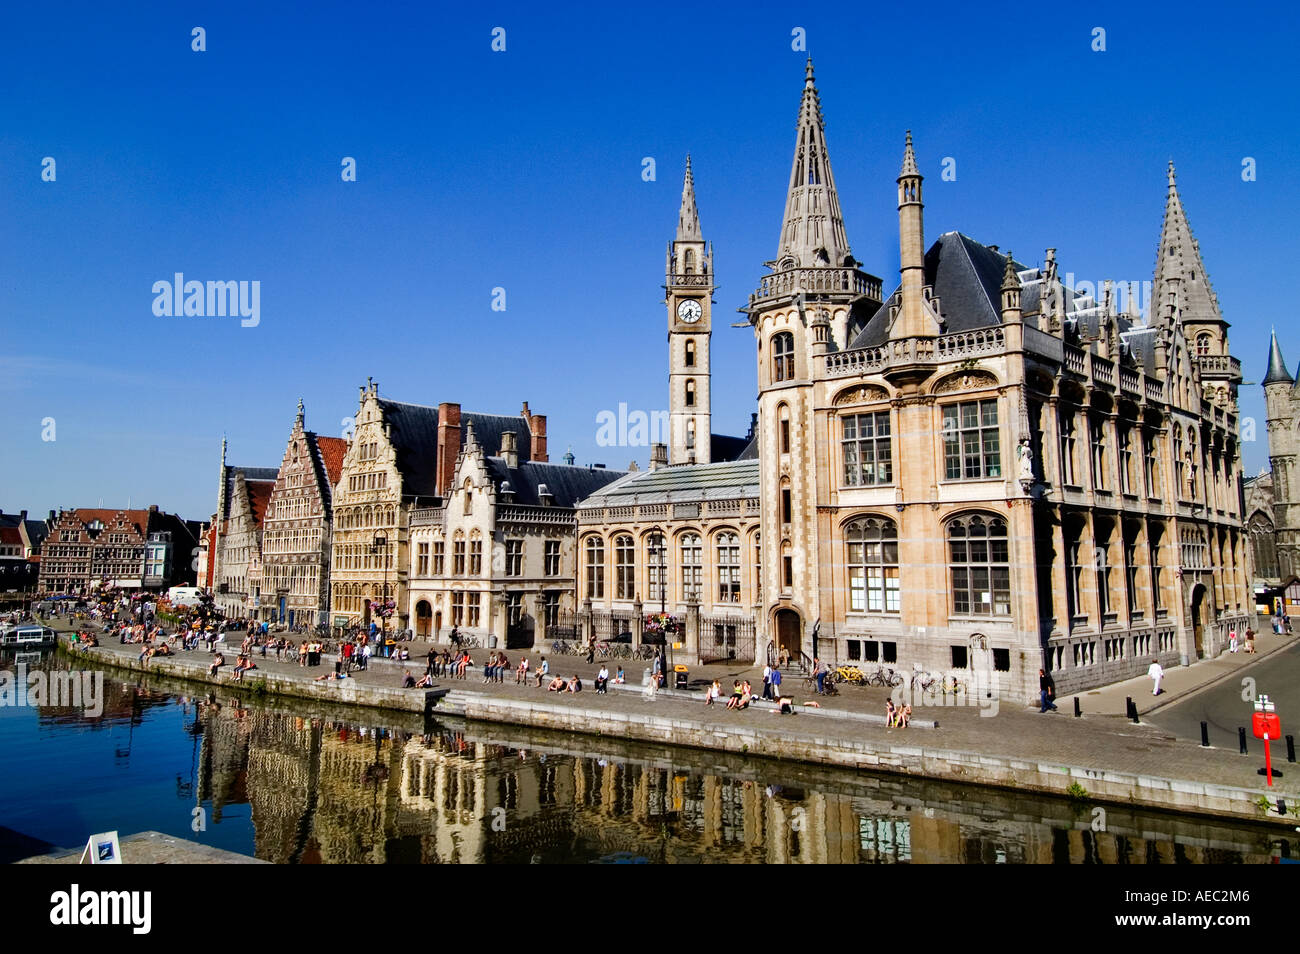 Ghent, Belgium: description, history of the city, sights and interesting facts 30